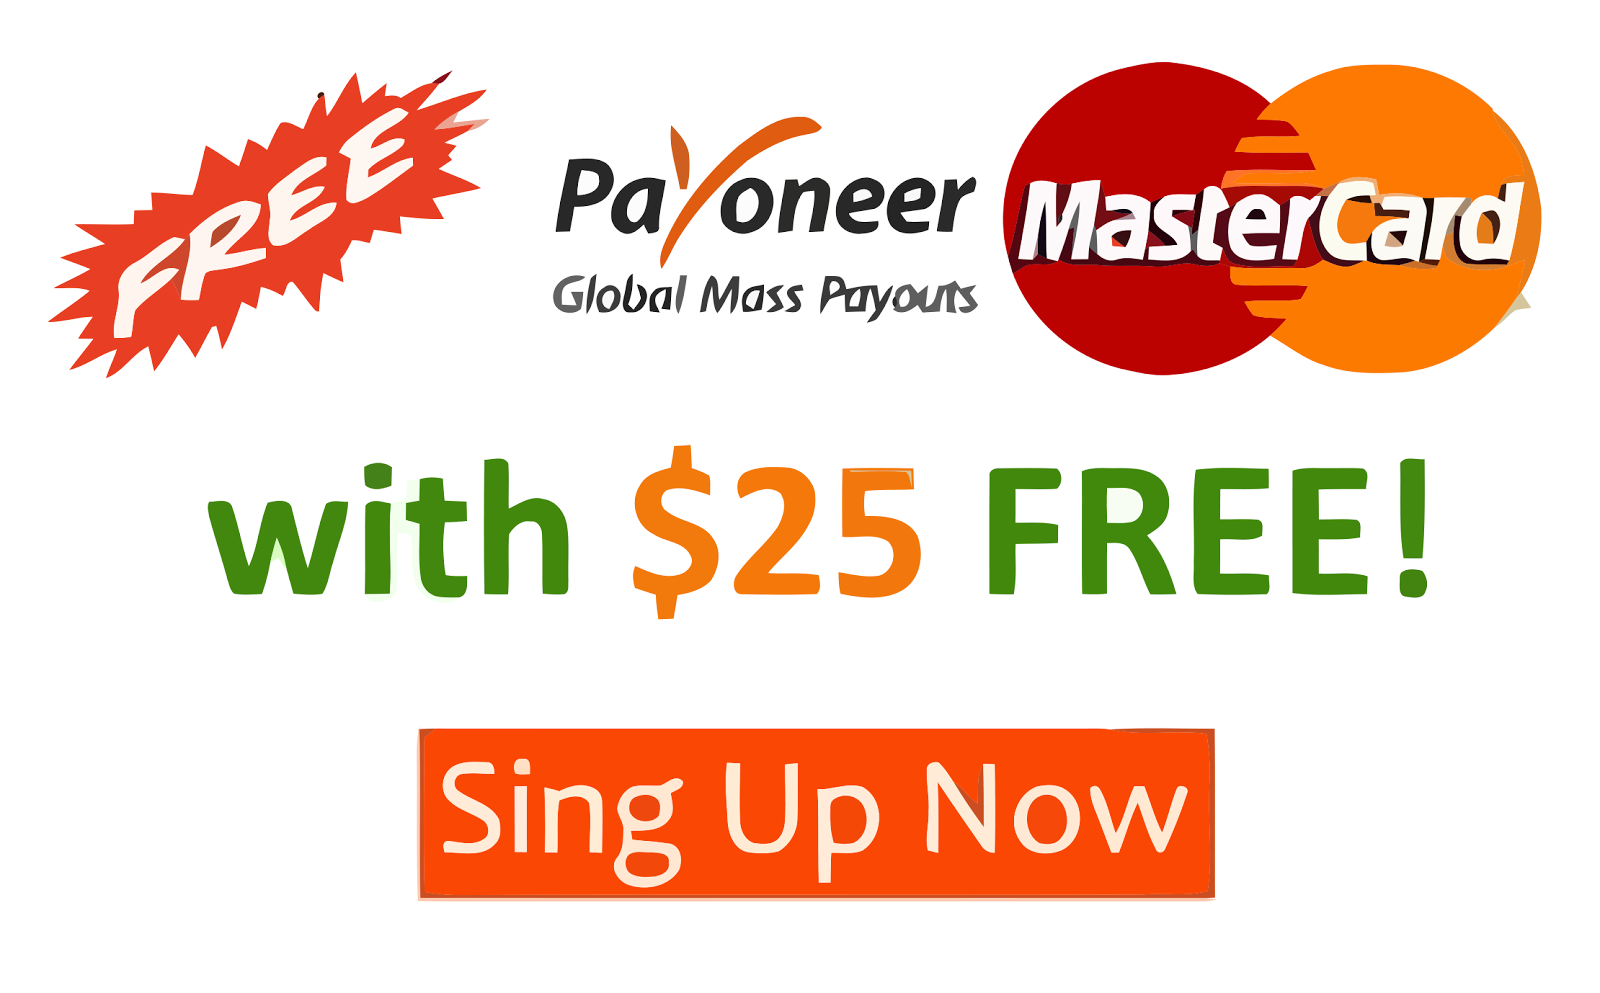 Free MasterCard with 25$